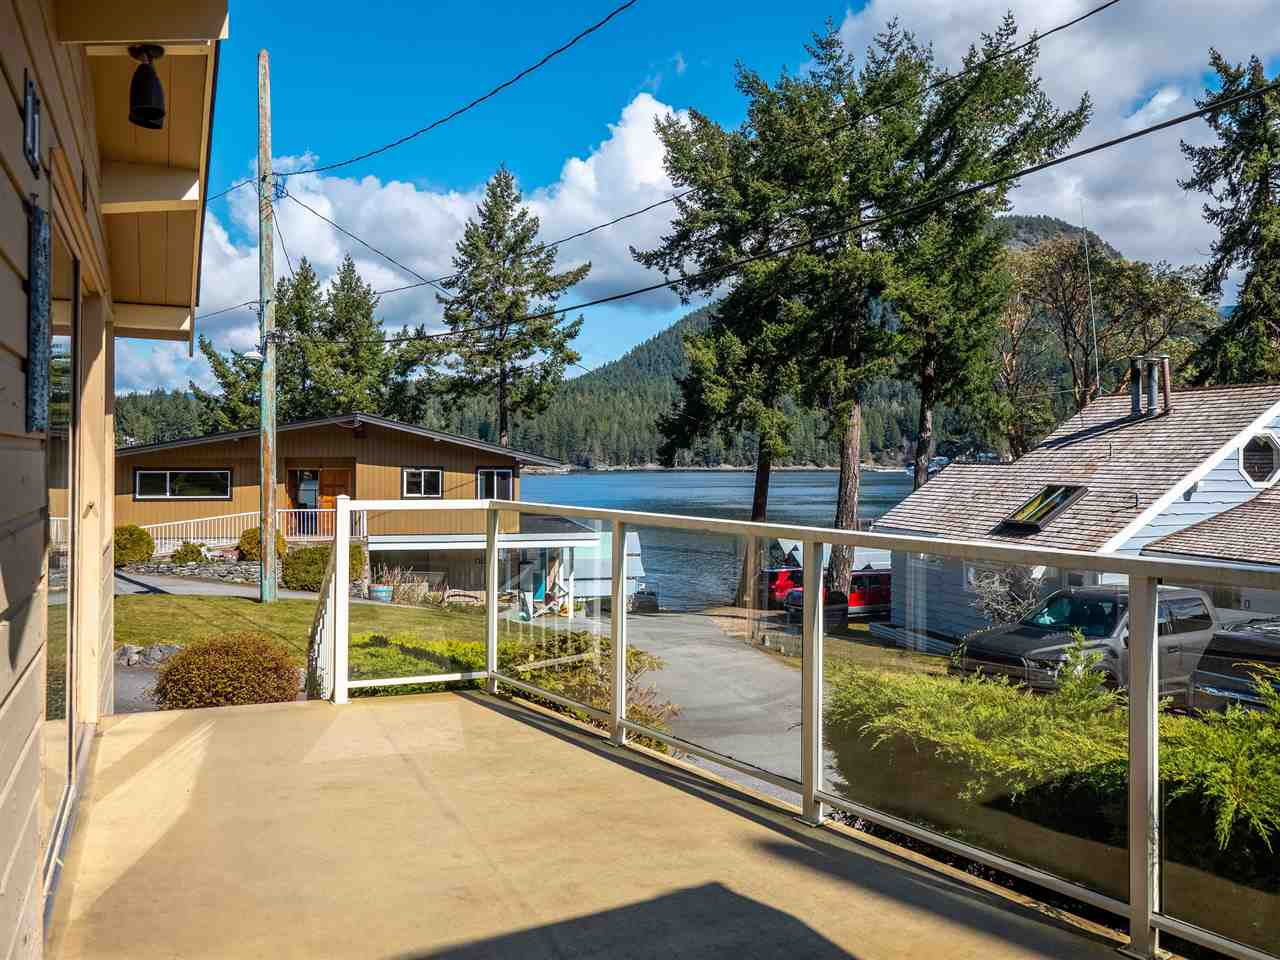 11 4995 GONZALES ROAD - Pender Harbour Egmont House/Single Family for sale, 2 Bedrooms (R2447947) - #4